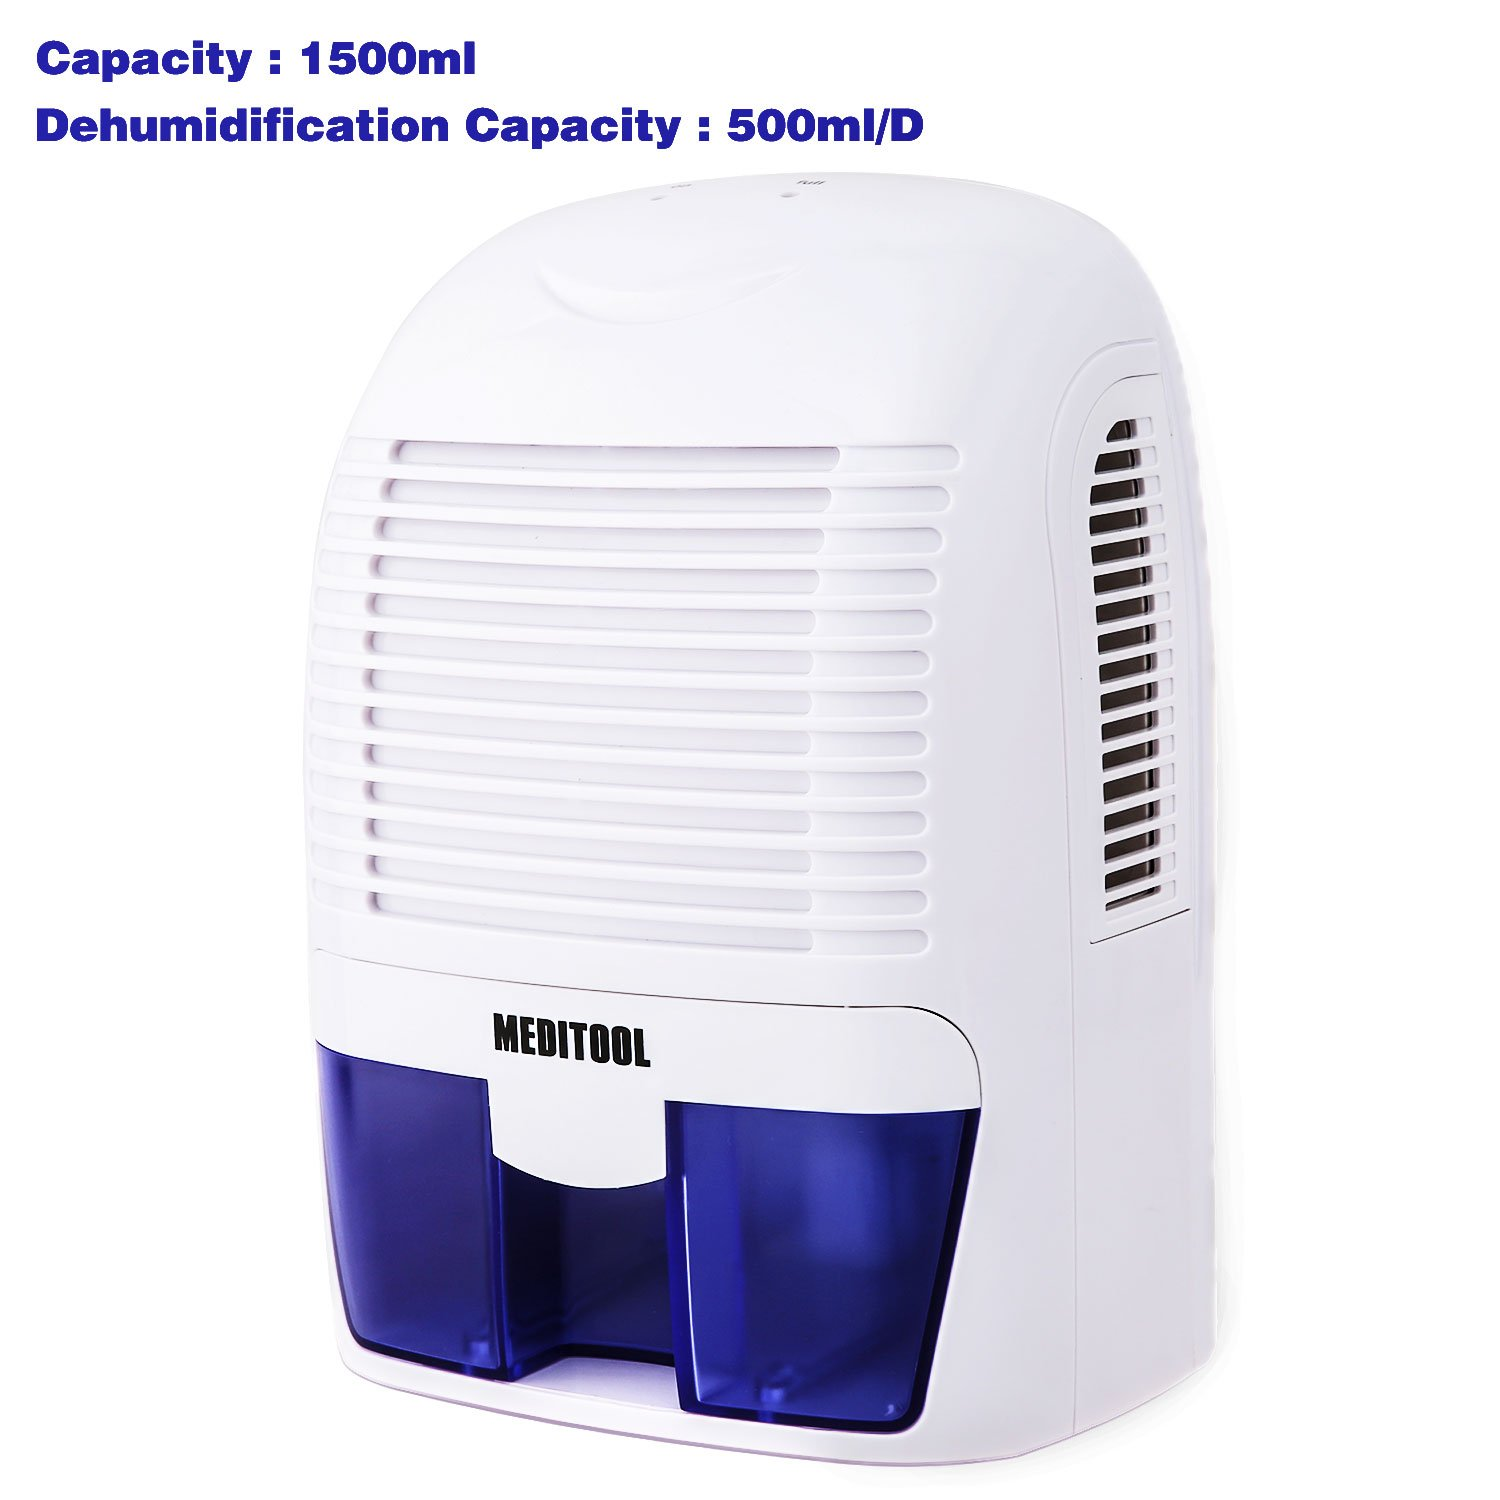 Meditool Electric Dehumidifier with 1.5L Water Tank, Auto Quiet Portable Compact Home Dehumidifiers for 2200 Cubic Feet Basement, Damp Air, Mold, Moisture in Home, Kitchen, Bedroom, Caravan, Office